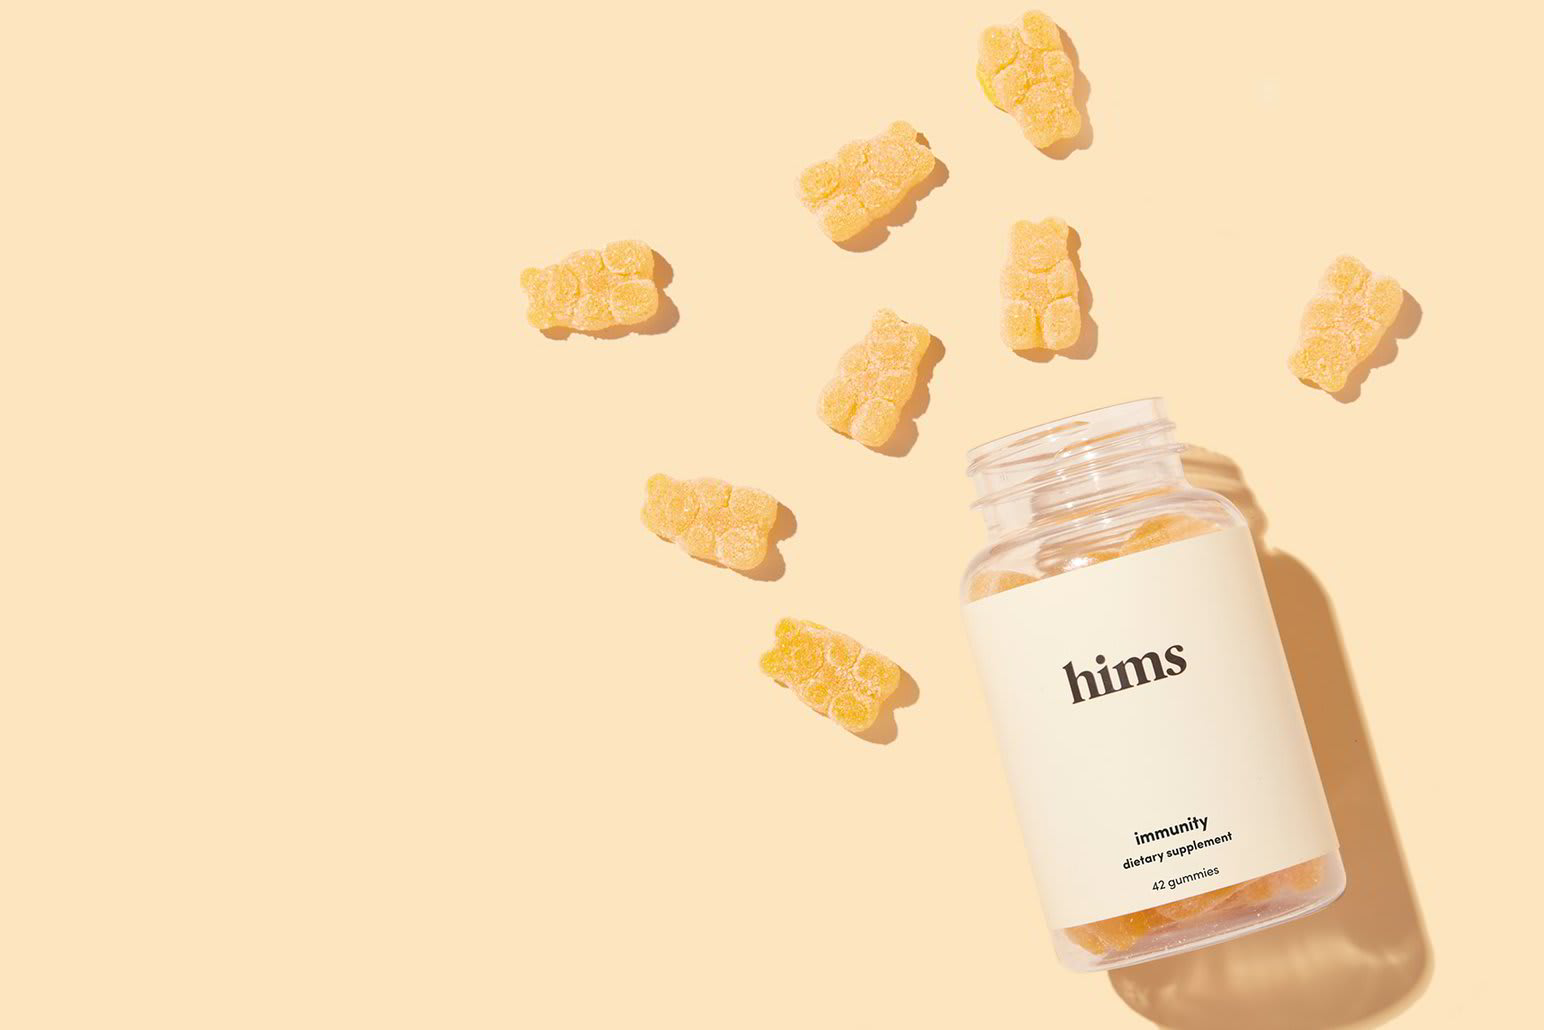 A bottle of Hims Immunity Vitamins surrounded by bear-shaped vitamins